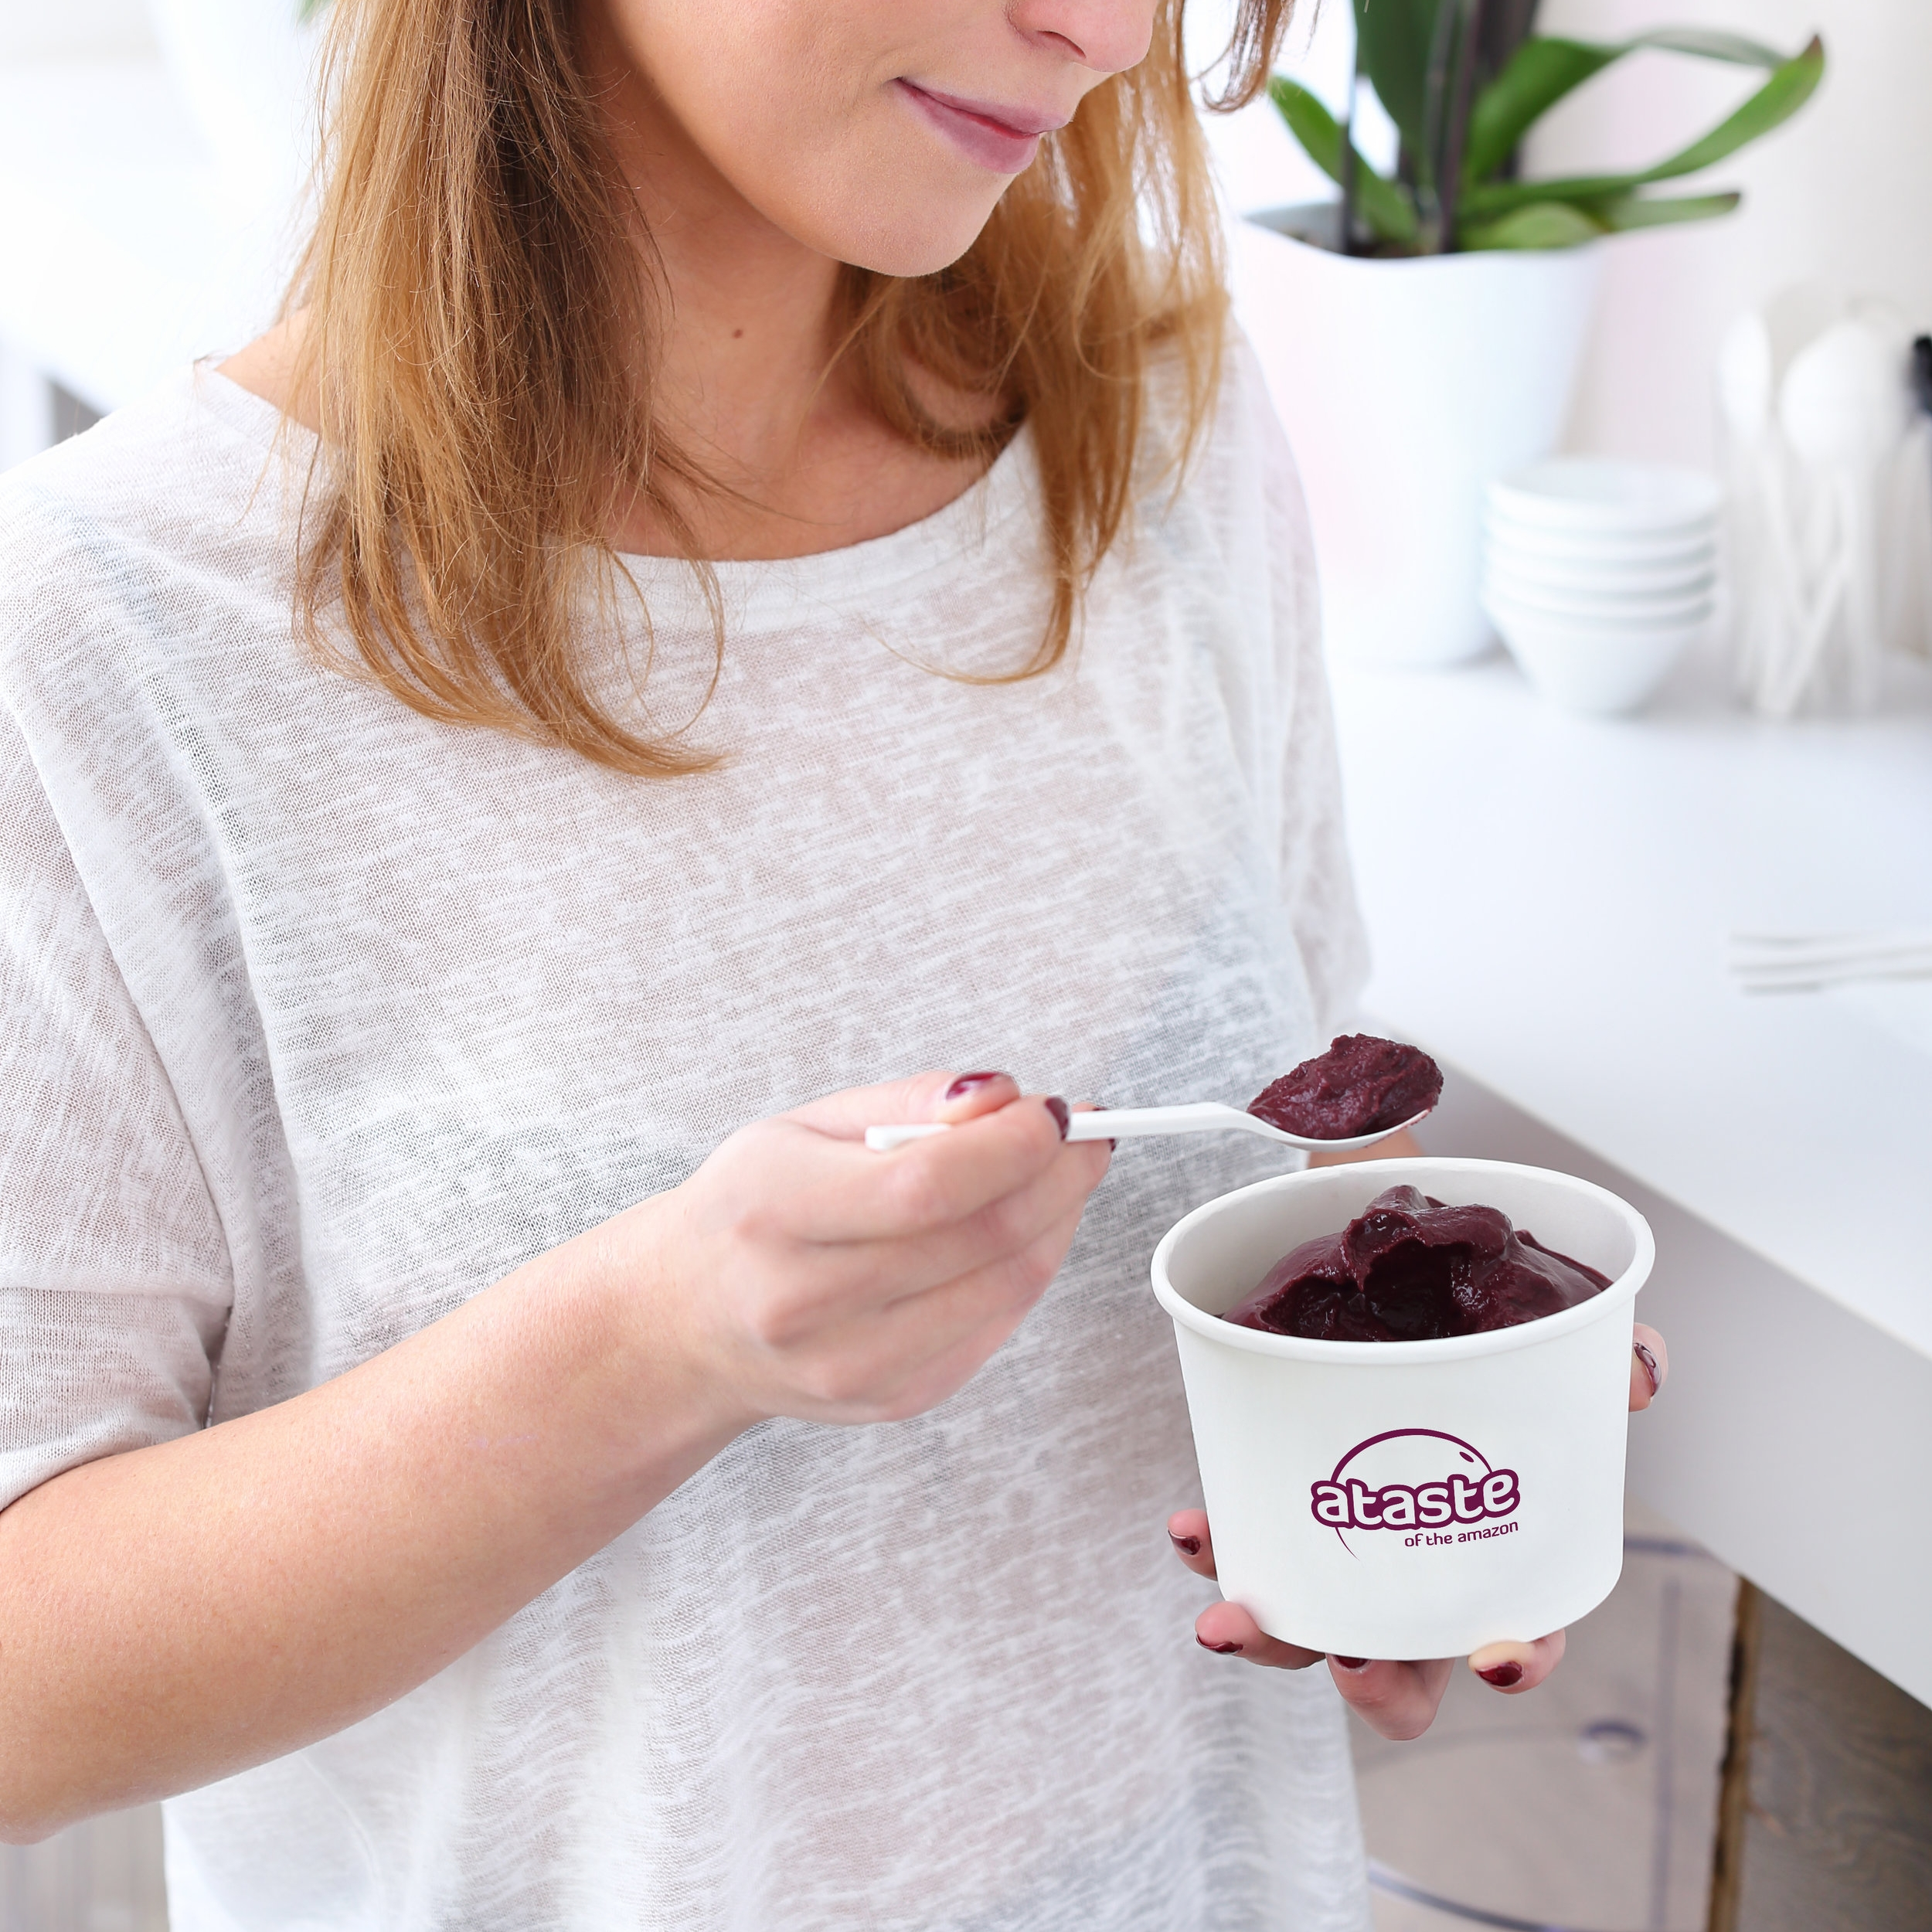 """<p><a href=""""/area-of-your-site"""">Well-being ataste açaí</a>Increase your well-being</p>"""